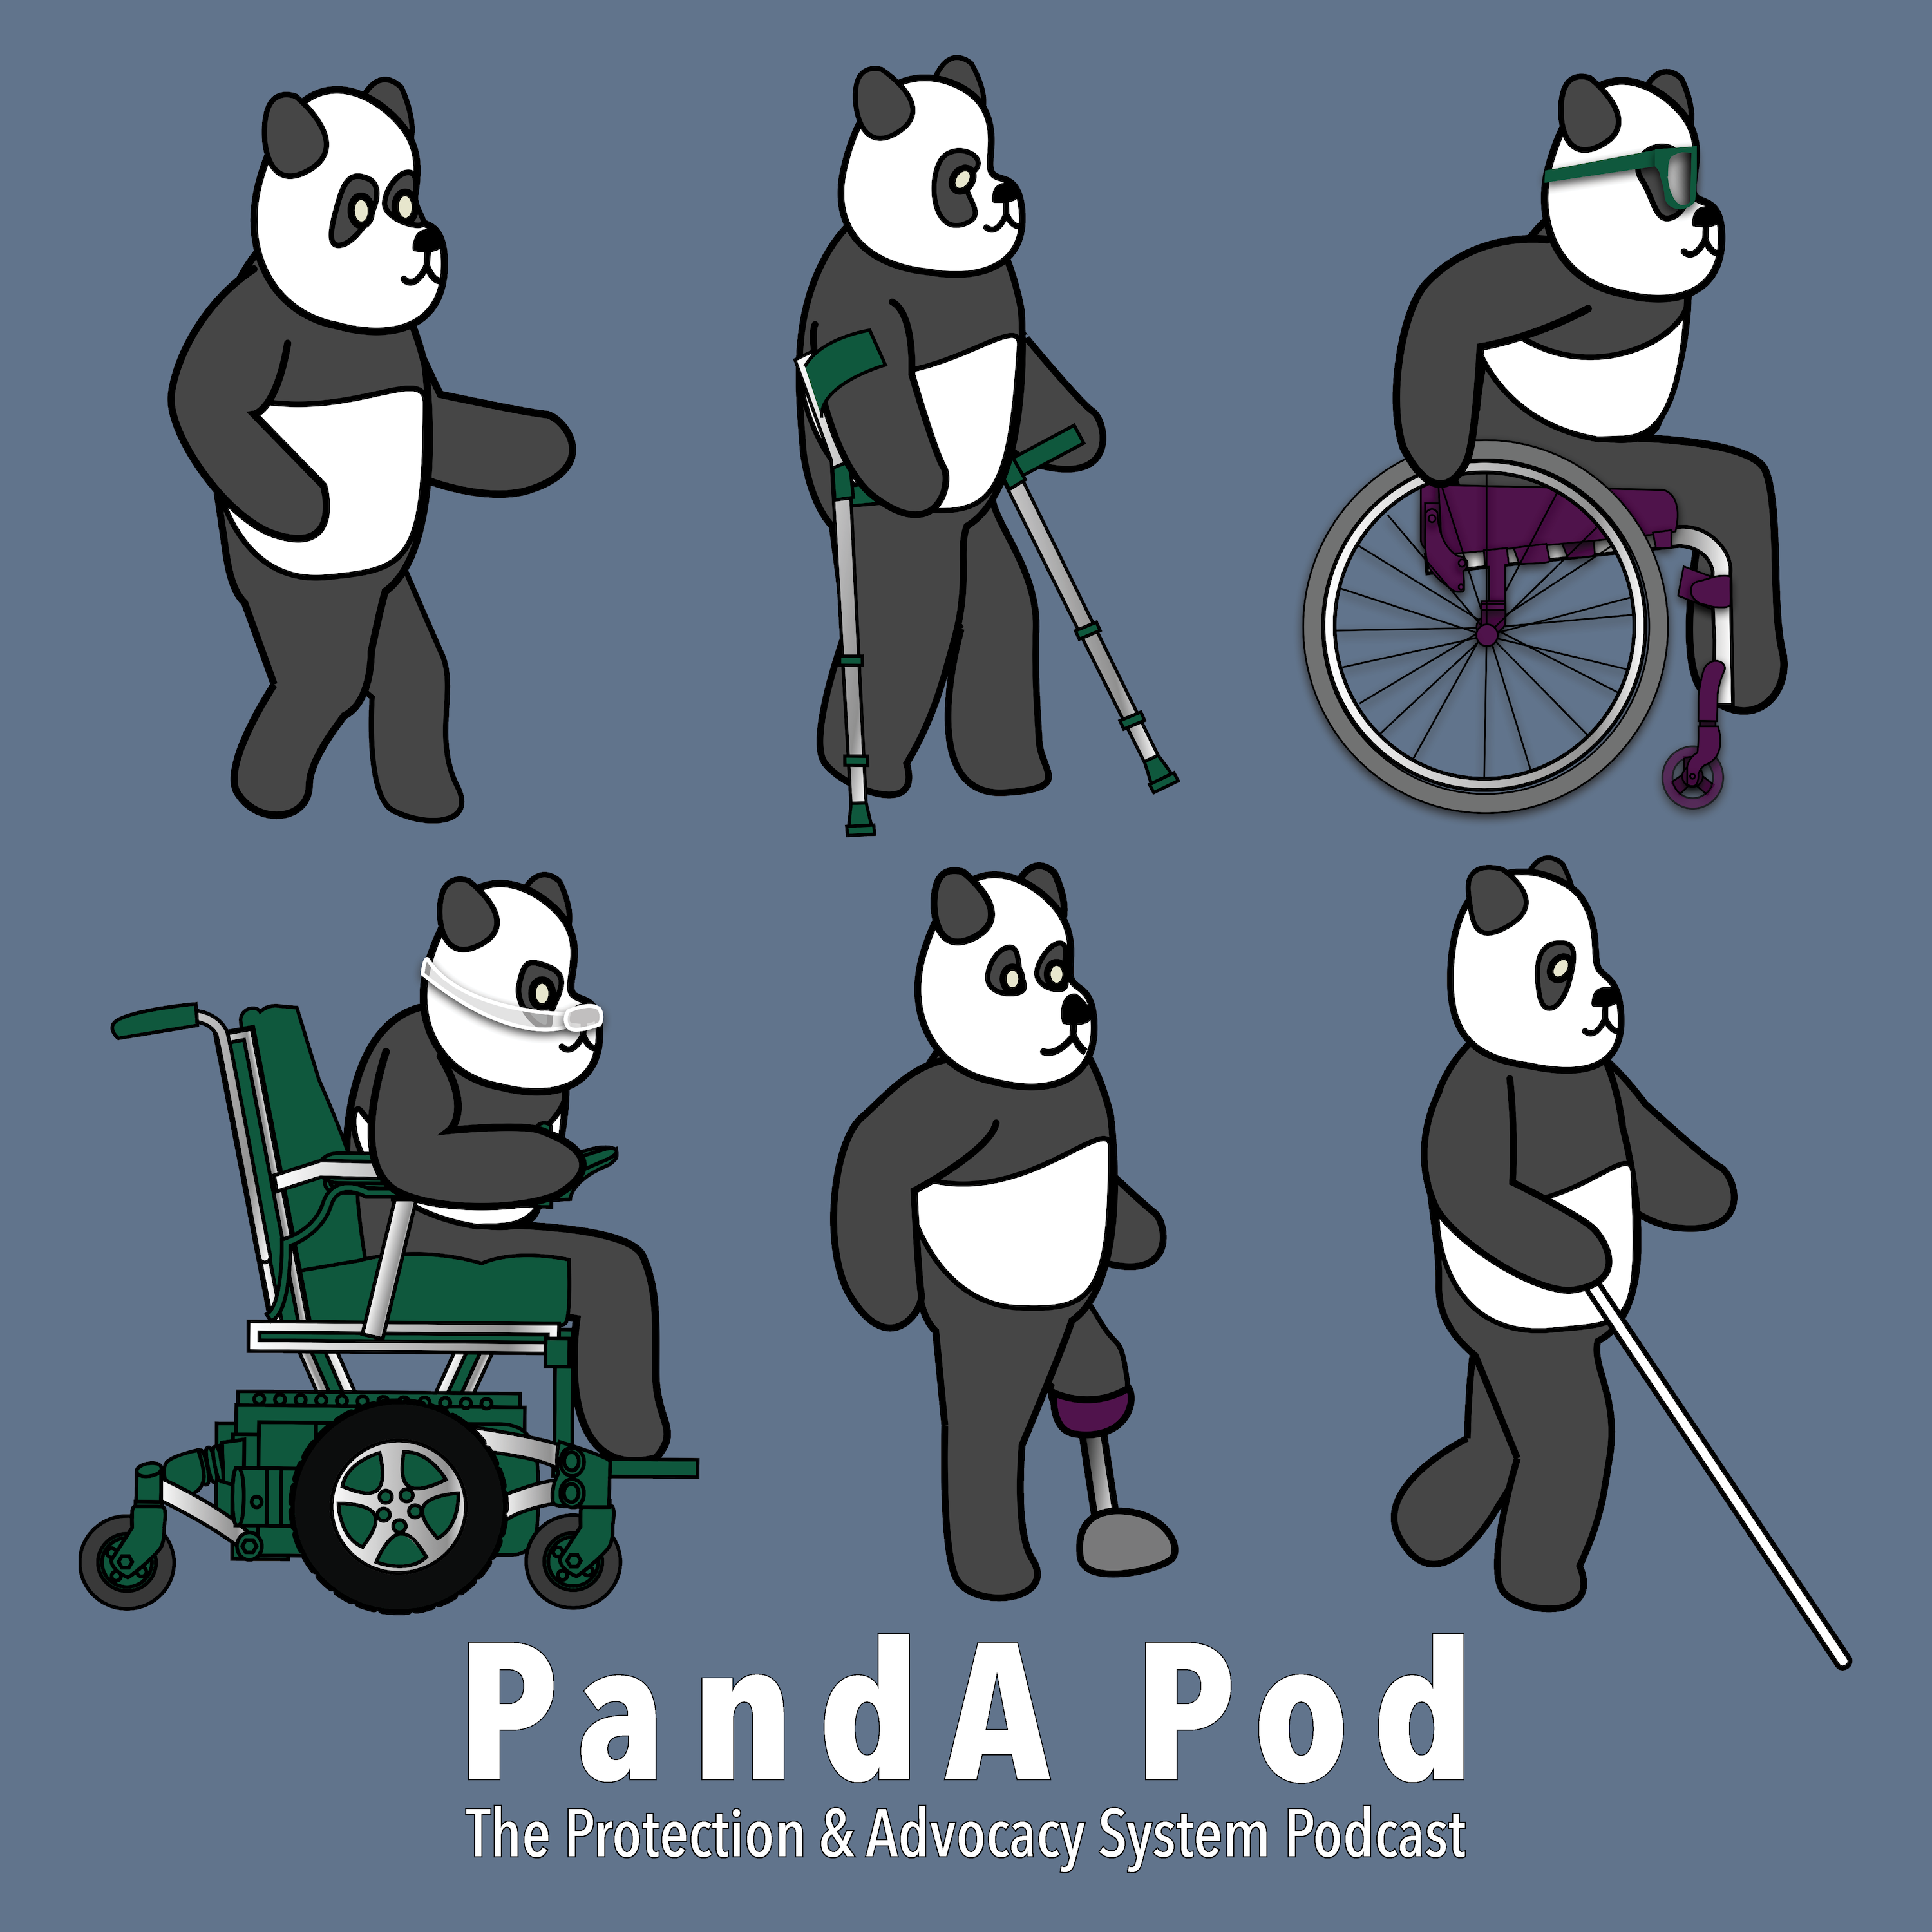 Profile of six pandas with different disabilities facing the right. One with no apparent disabilities, one with crutches, one uses a manual wheelchair wearing sunglasses, one uses a power wheelchair wearing a mask over its nose, one has a prosthetic limb and one uses a white cane. Artist Mike Mort.